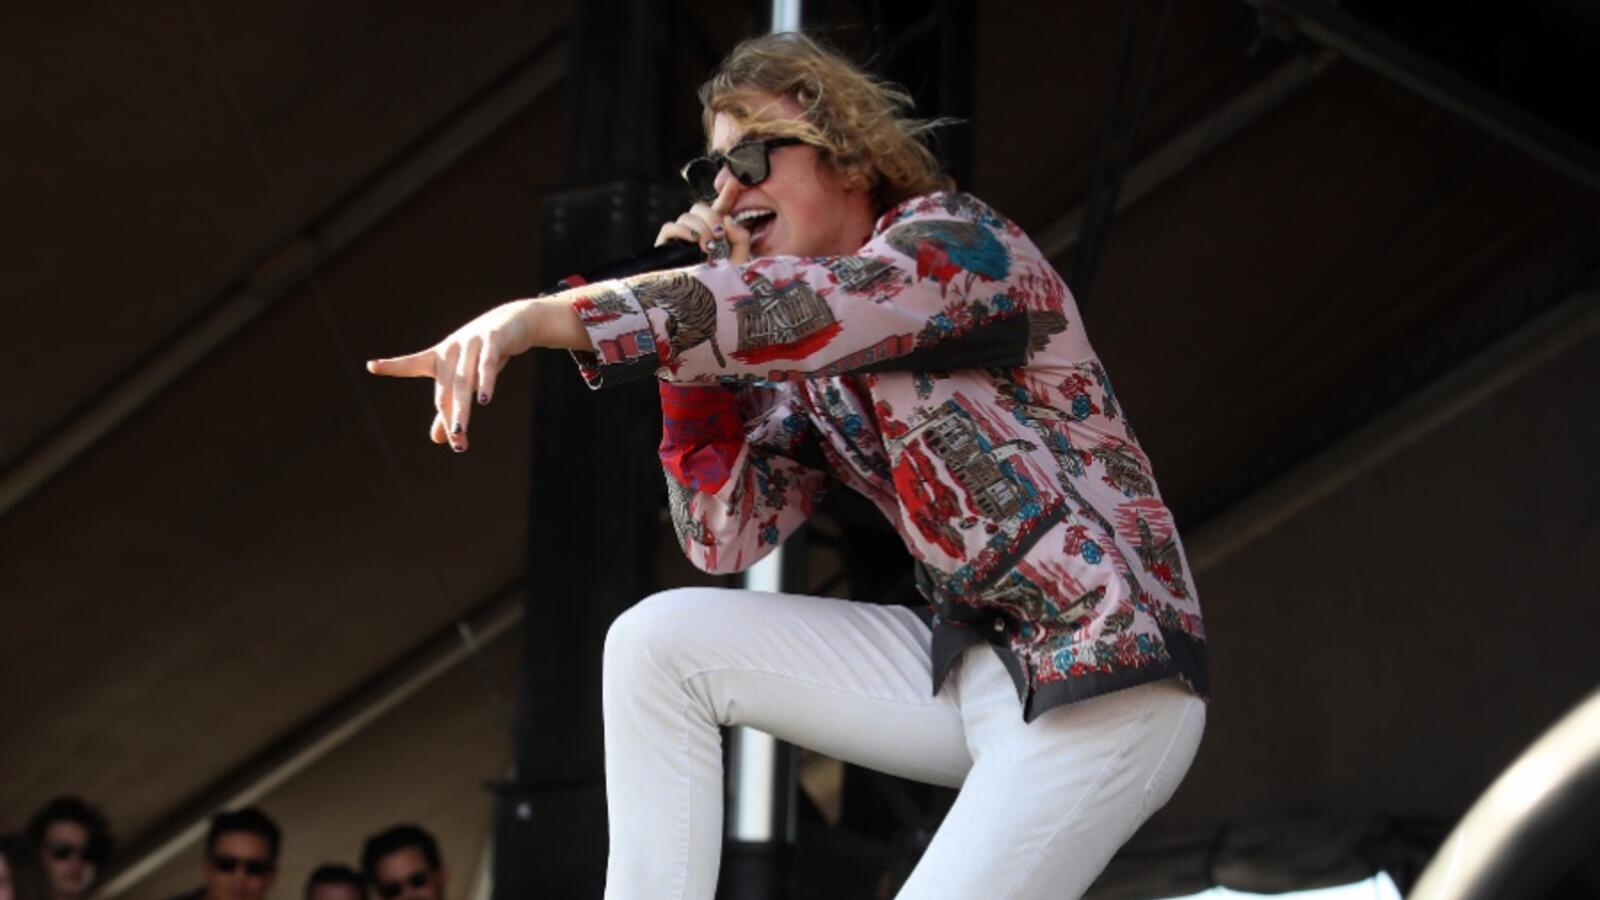 The Kid LAROI Gets The Crowd Grooving At The 2021 iHeartRadio Daytime Stage